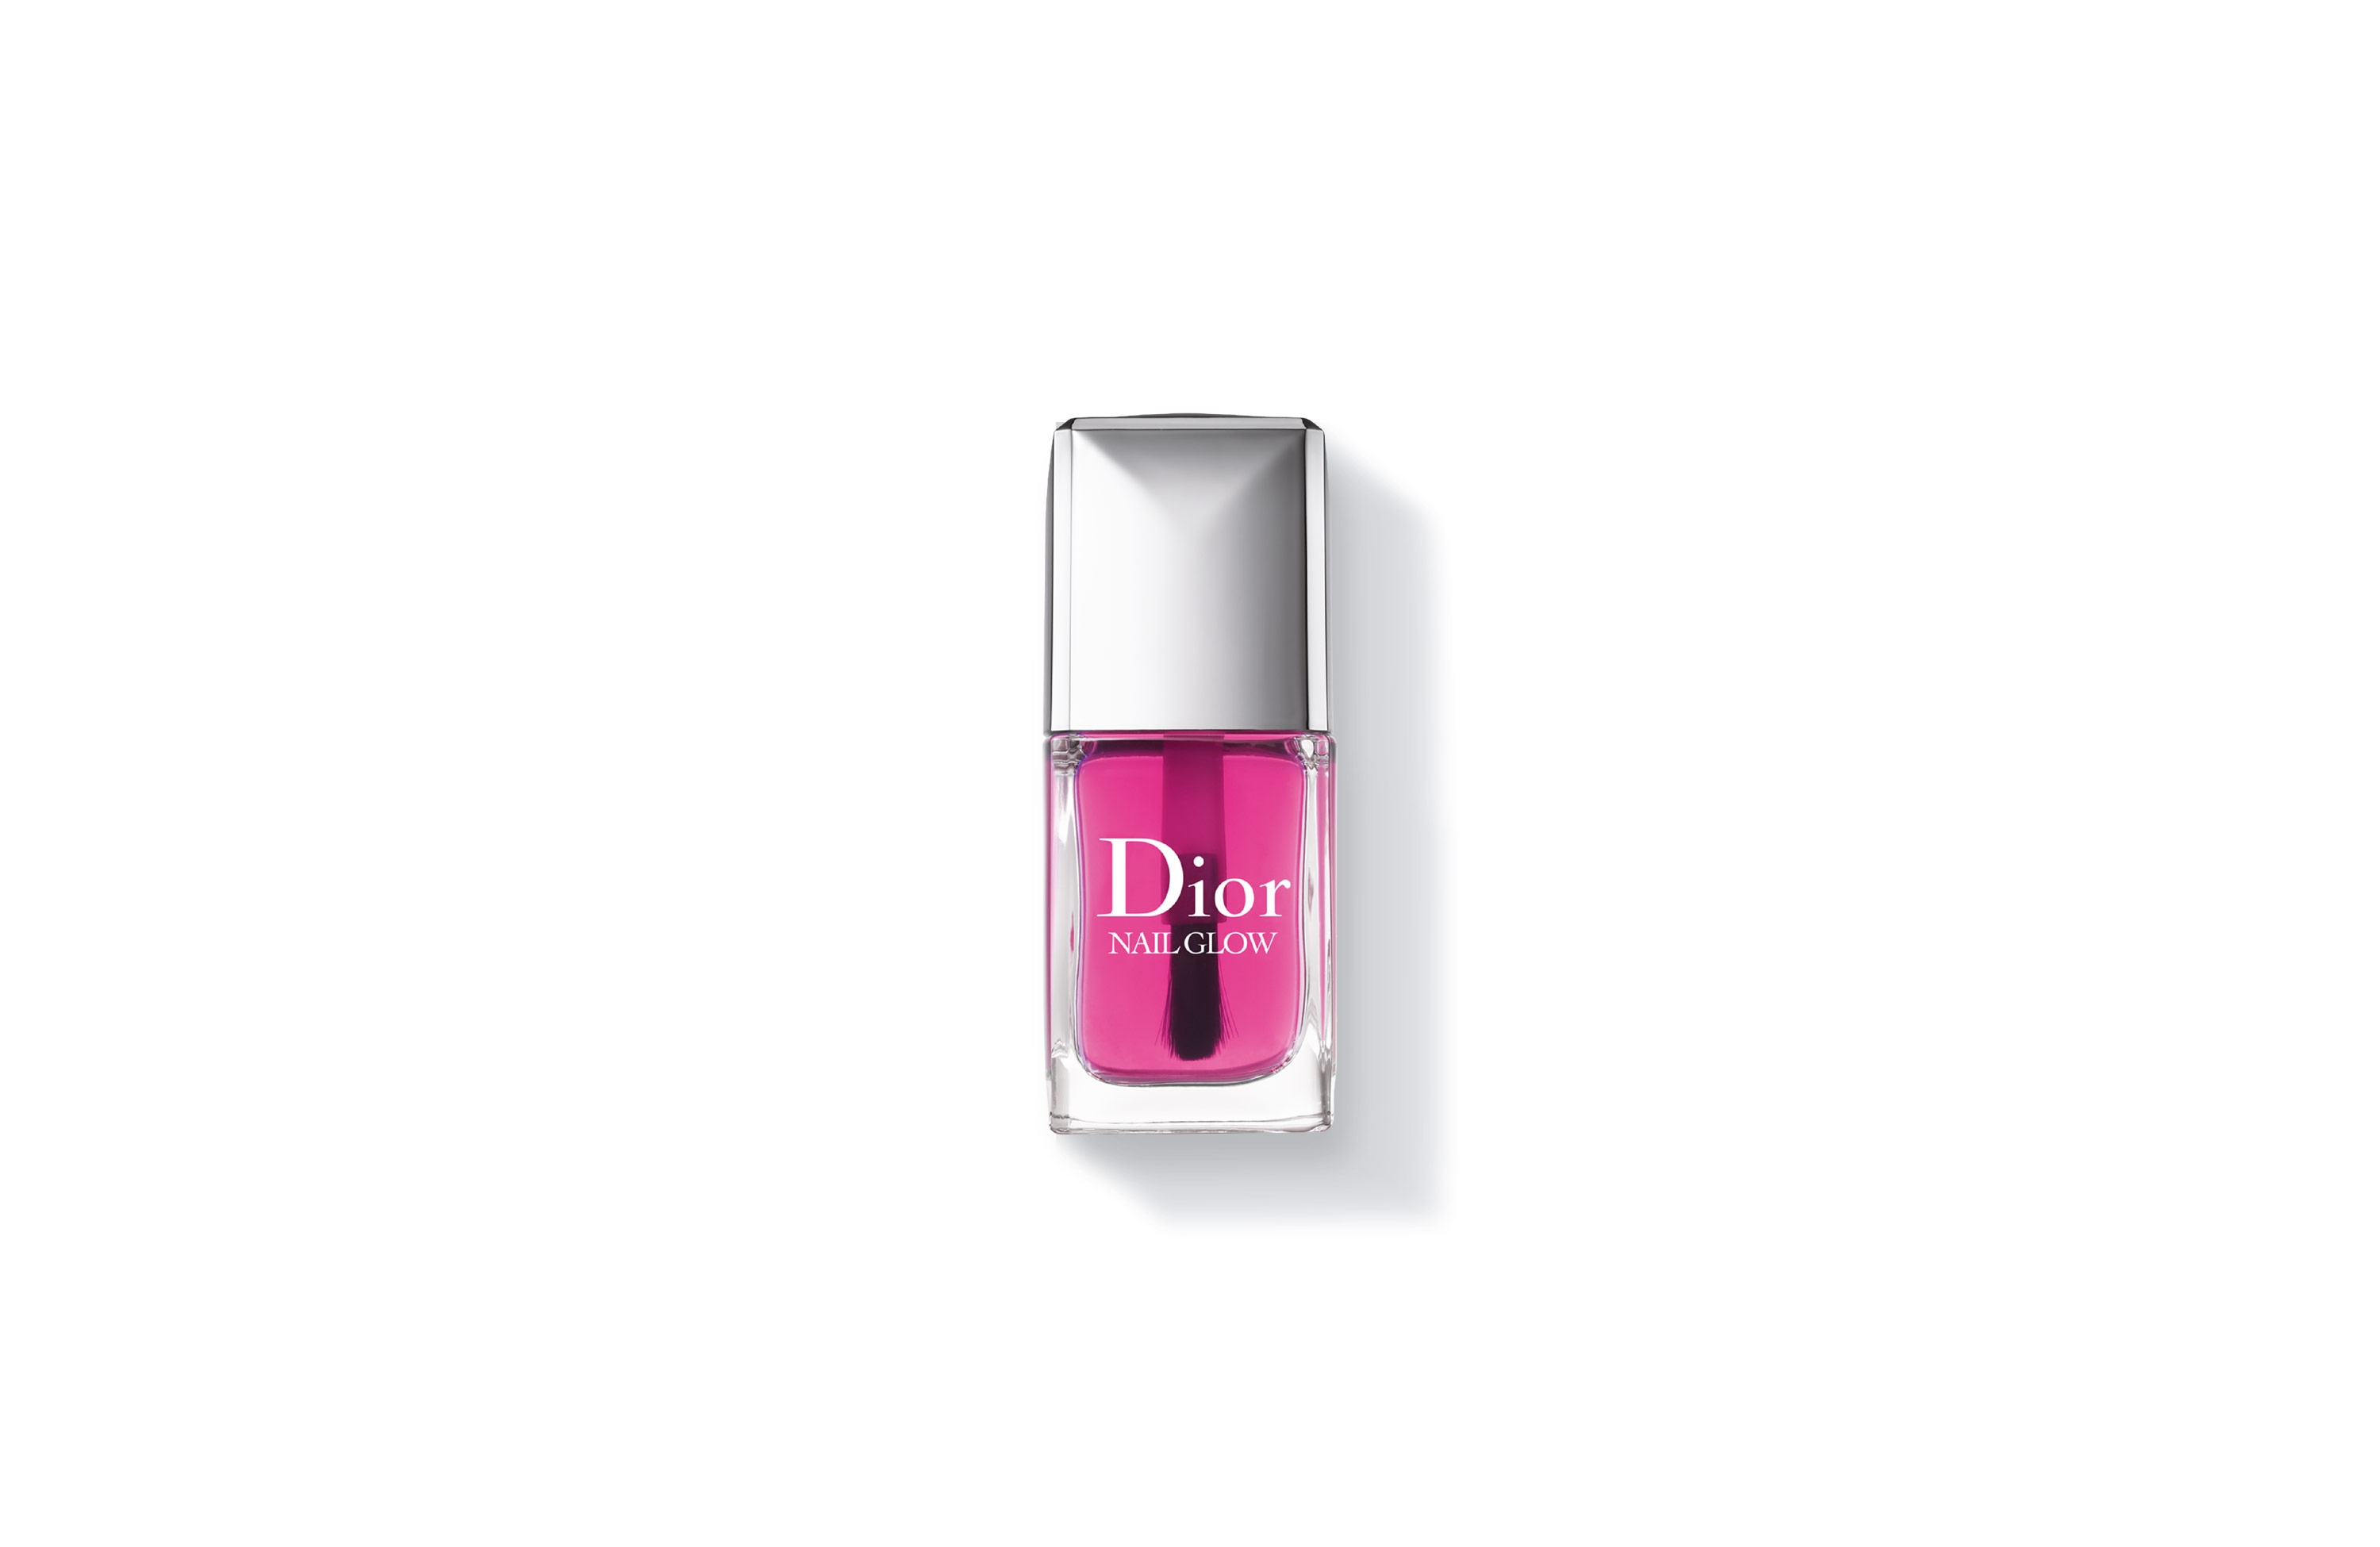 Dior nail glow - smalto rivelatore di luminosità